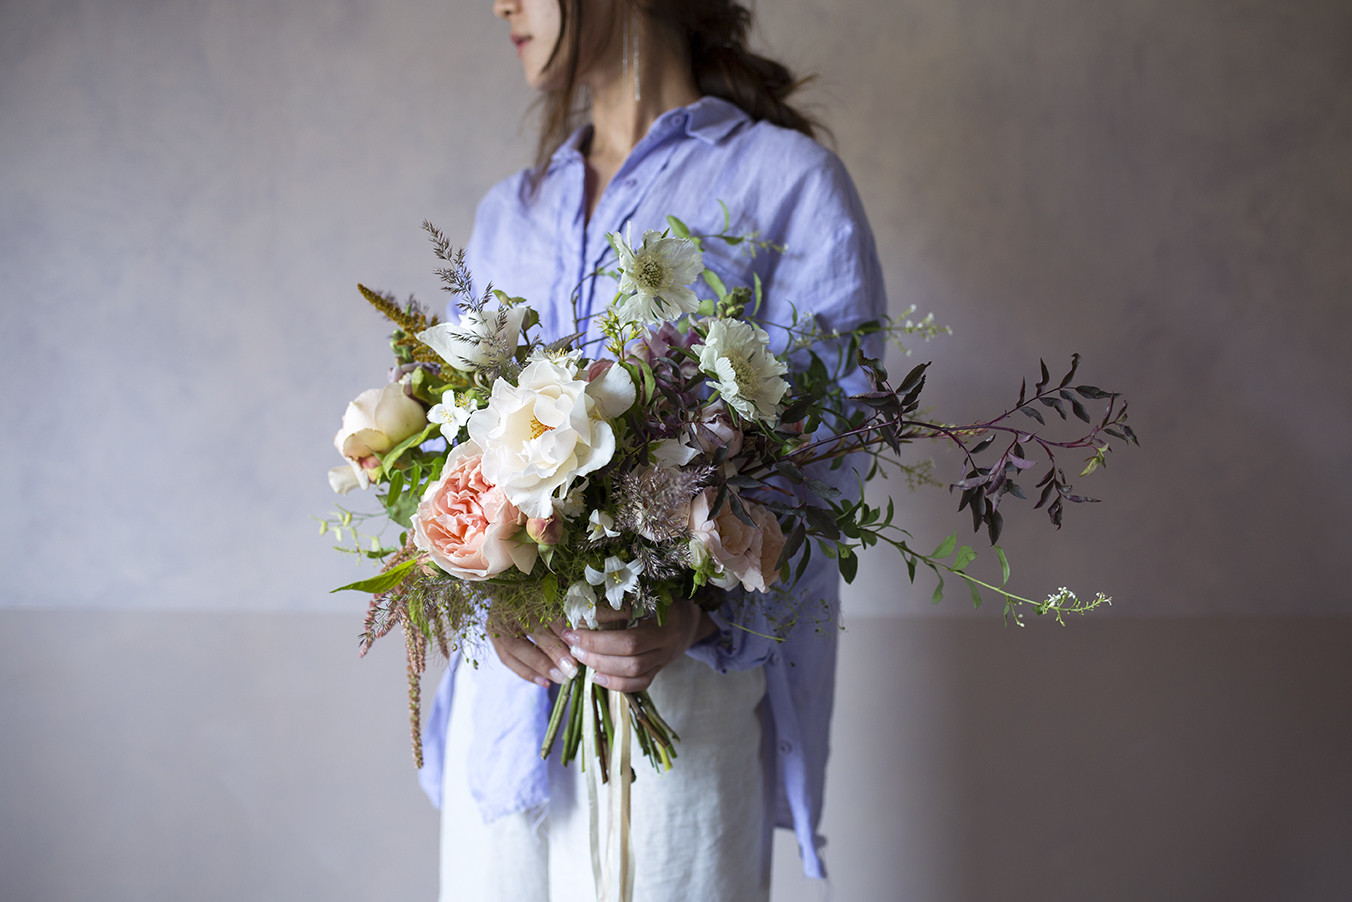 A summer wedding bouquet made by a student at a group workshop at Aesme Flower Studio